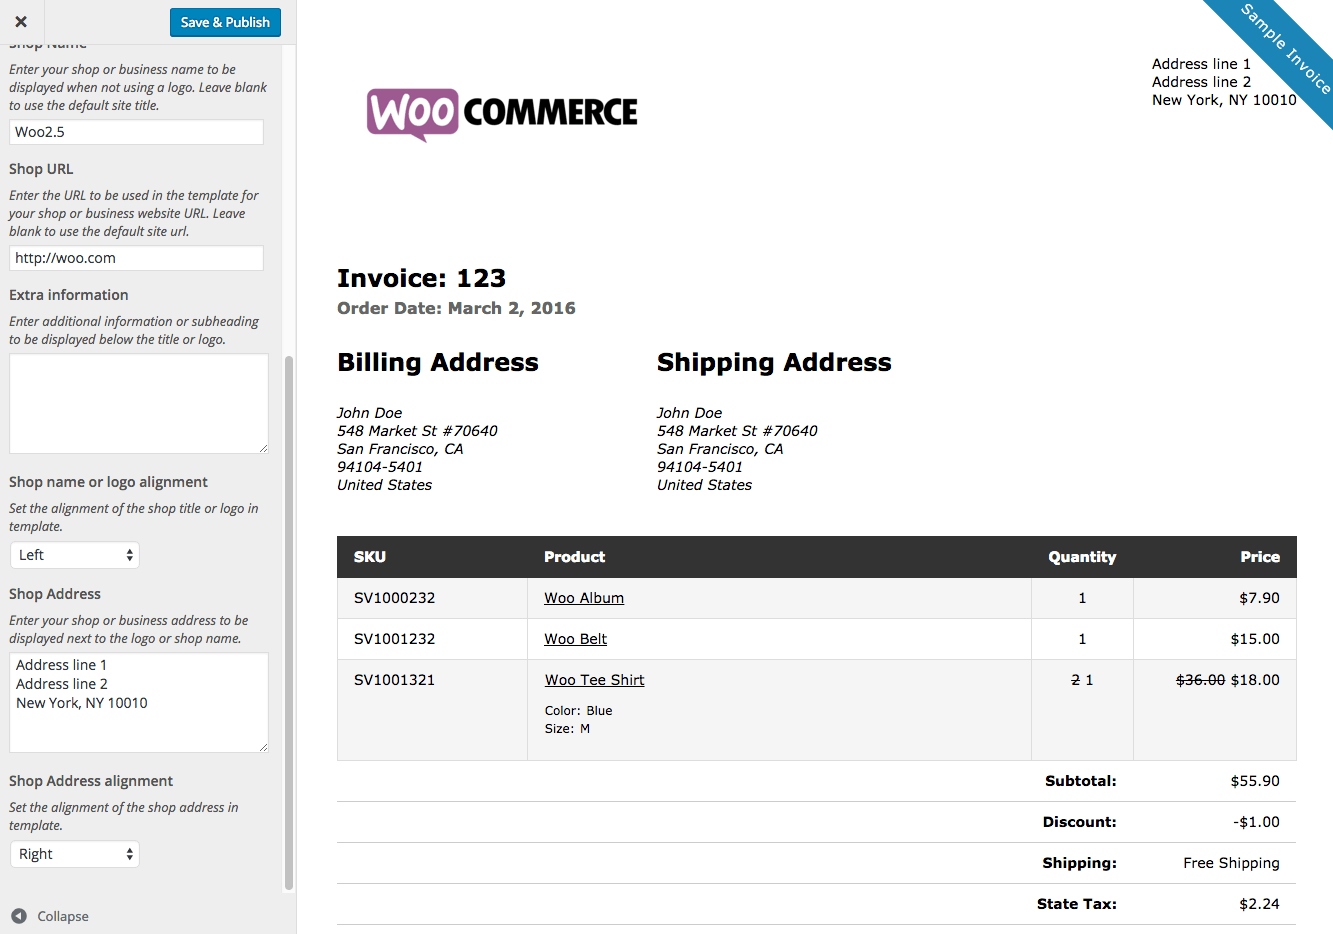 Hucareus  Marvellous Woocommerce Print Invoices Amp Packing Lists  Woocommerce Docs With Exquisite Woocommerce Print Invoices  Packing Lists Customizer With Awesome Delaware Gross Receipts Tax Return Also Rental Receipts Template In Addition Lic Premium Paid Receipt And Epson Receipt As Well As Western Union Money Transfer Receipt Sample Additionally Receipt Copy Sample From Docswoocommercecom With Hucareus  Exquisite Woocommerce Print Invoices Amp Packing Lists  Woocommerce Docs With Awesome Woocommerce Print Invoices  Packing Lists Customizer And Marvellous Delaware Gross Receipts Tax Return Also Rental Receipts Template In Addition Lic Premium Paid Receipt From Docswoocommercecom